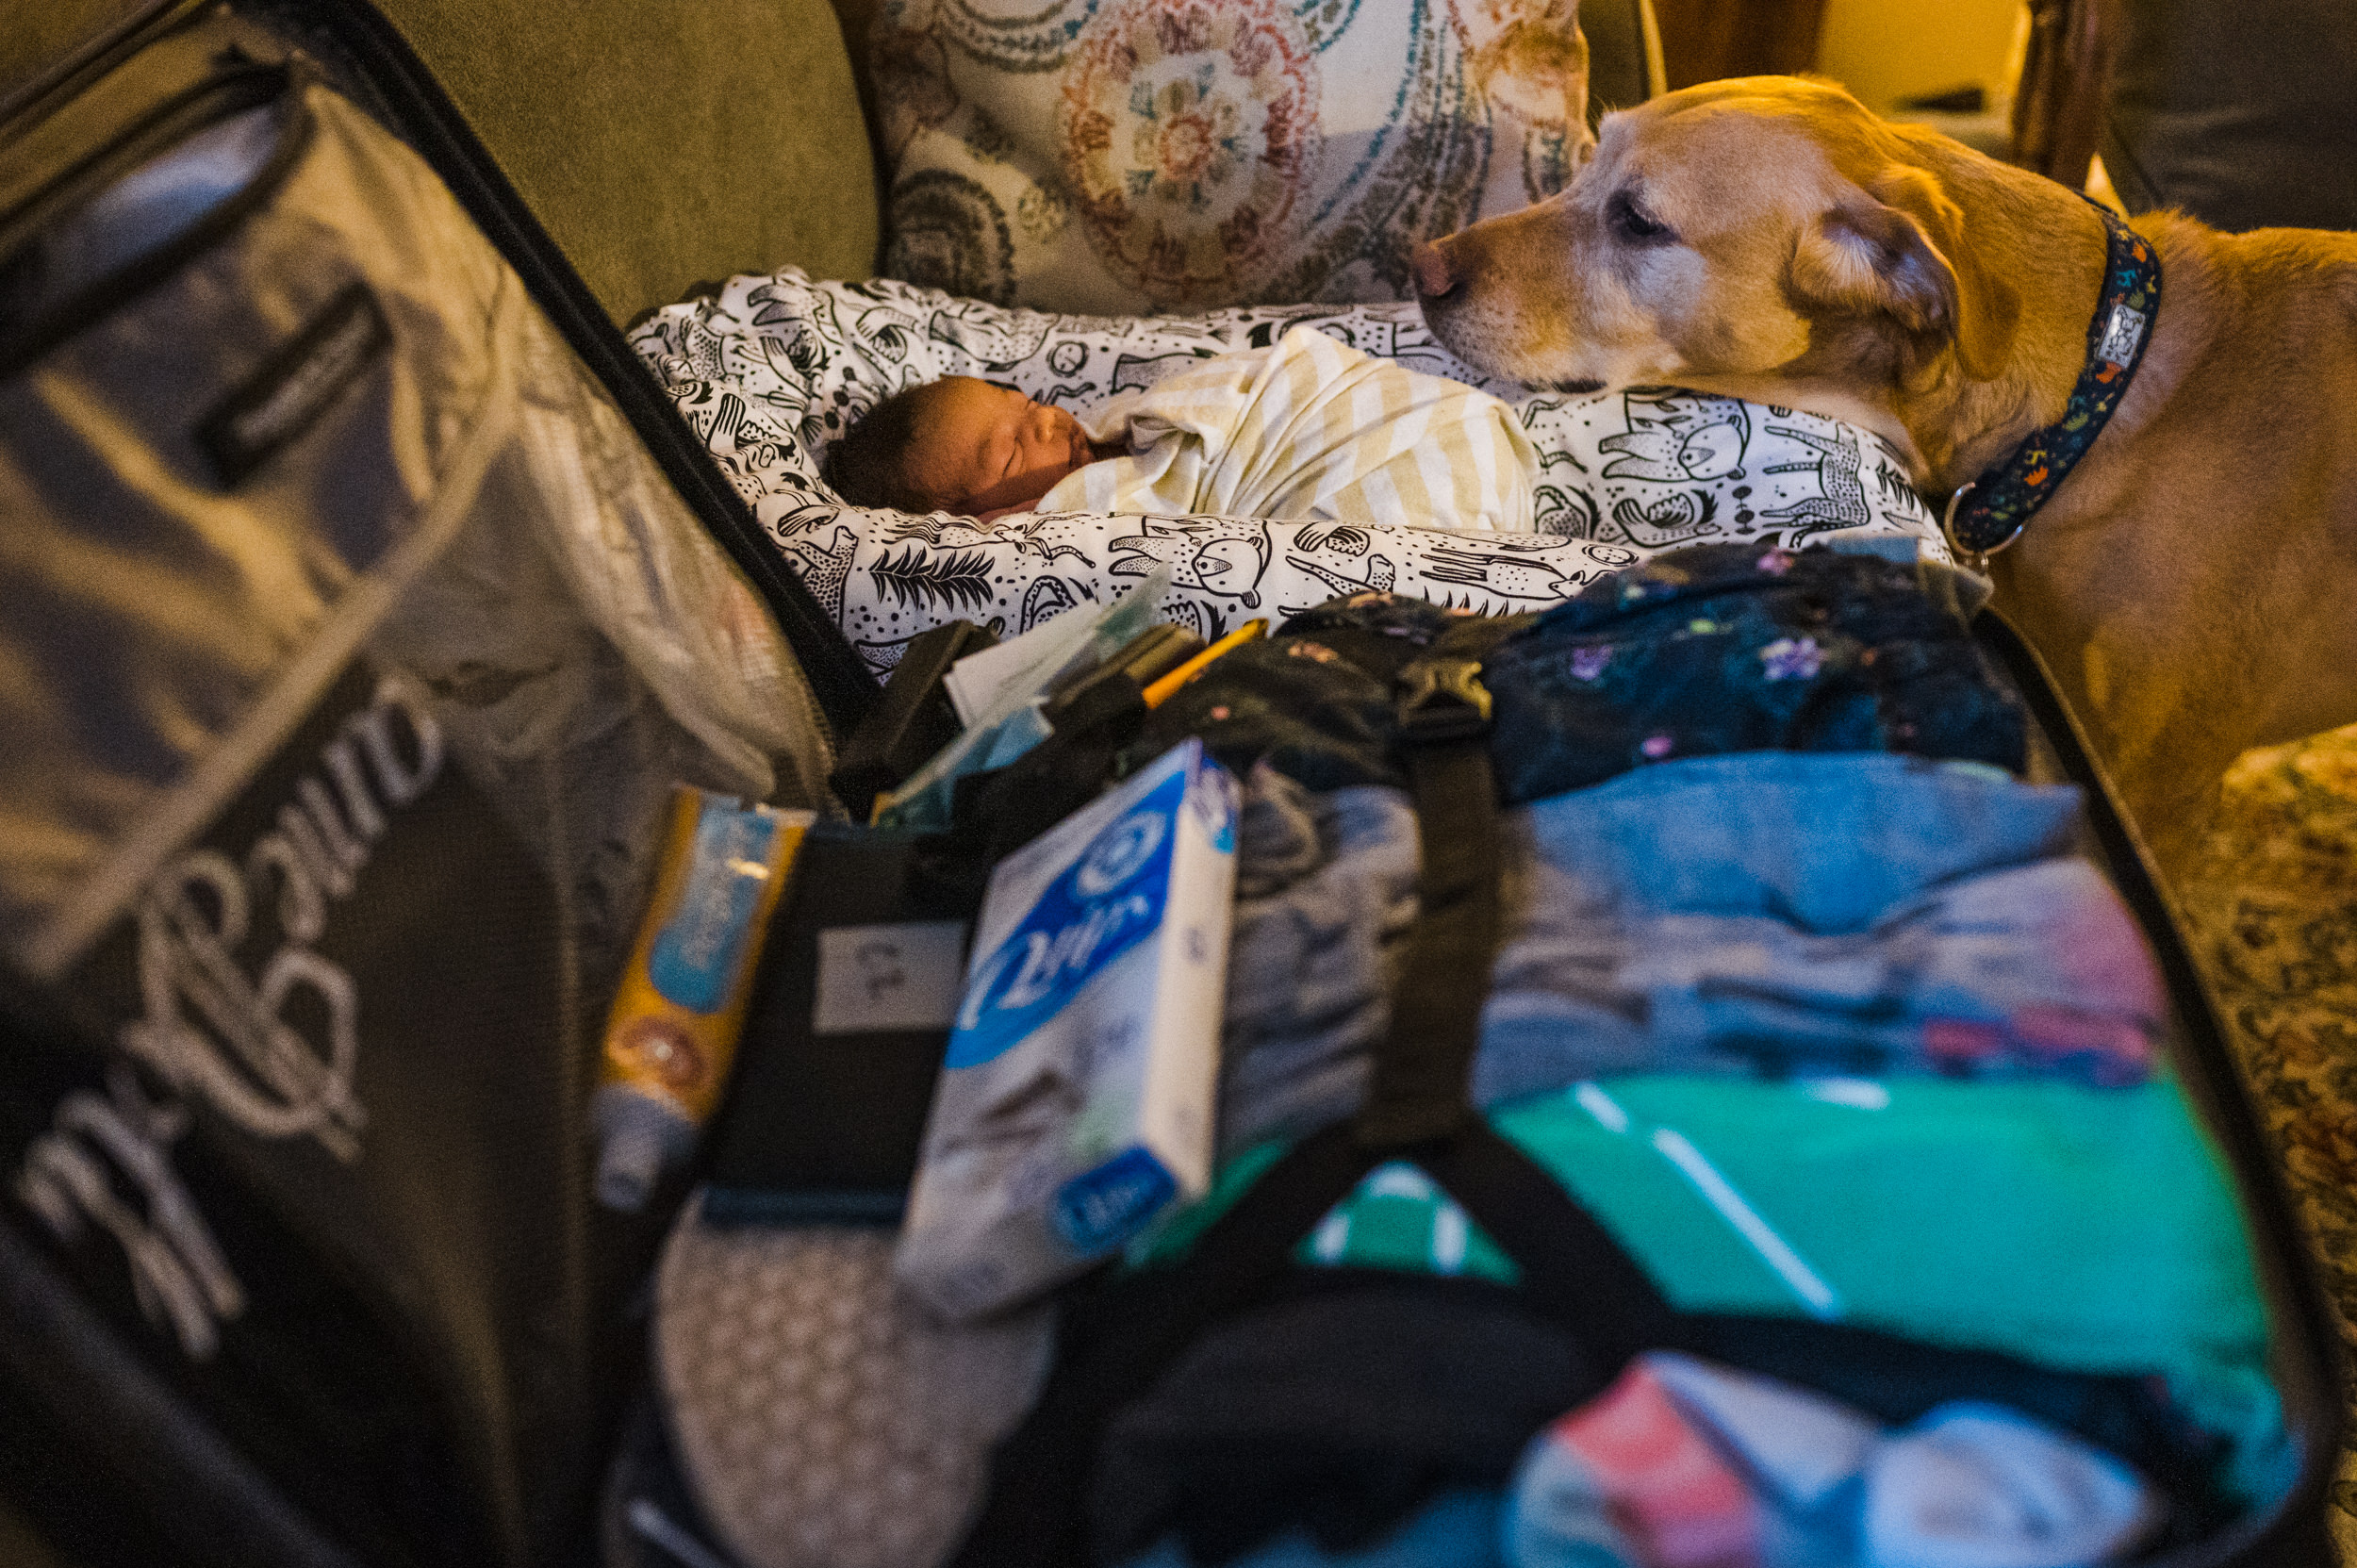 Dog watching over newborn baby boy lying on the couch.